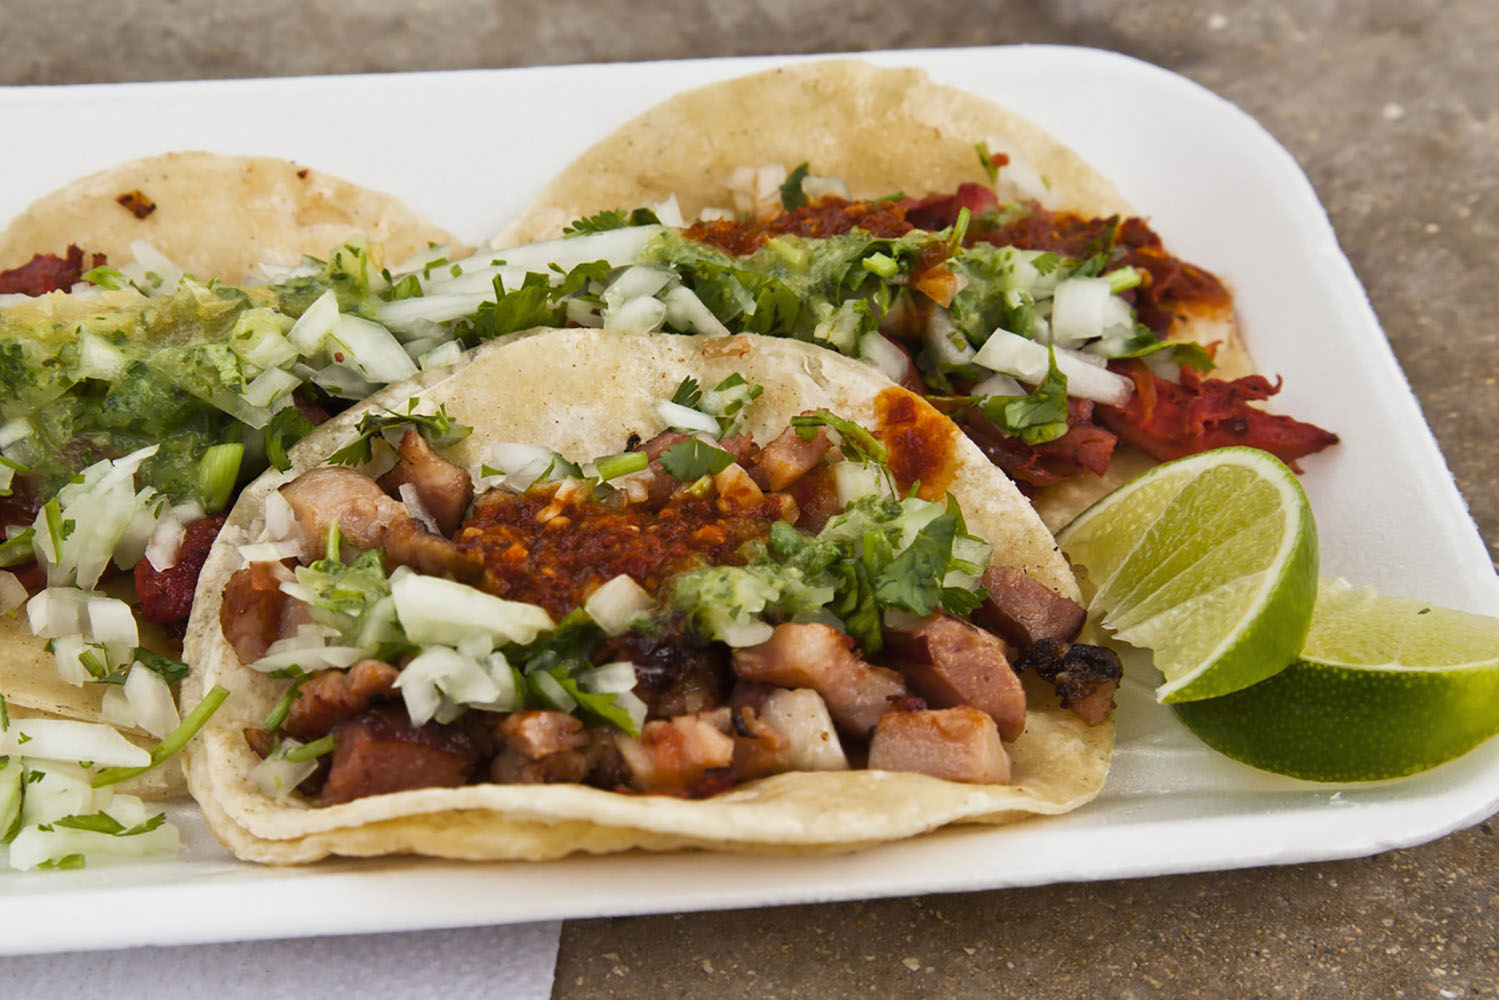 Tacos are a popular Mexican street food.